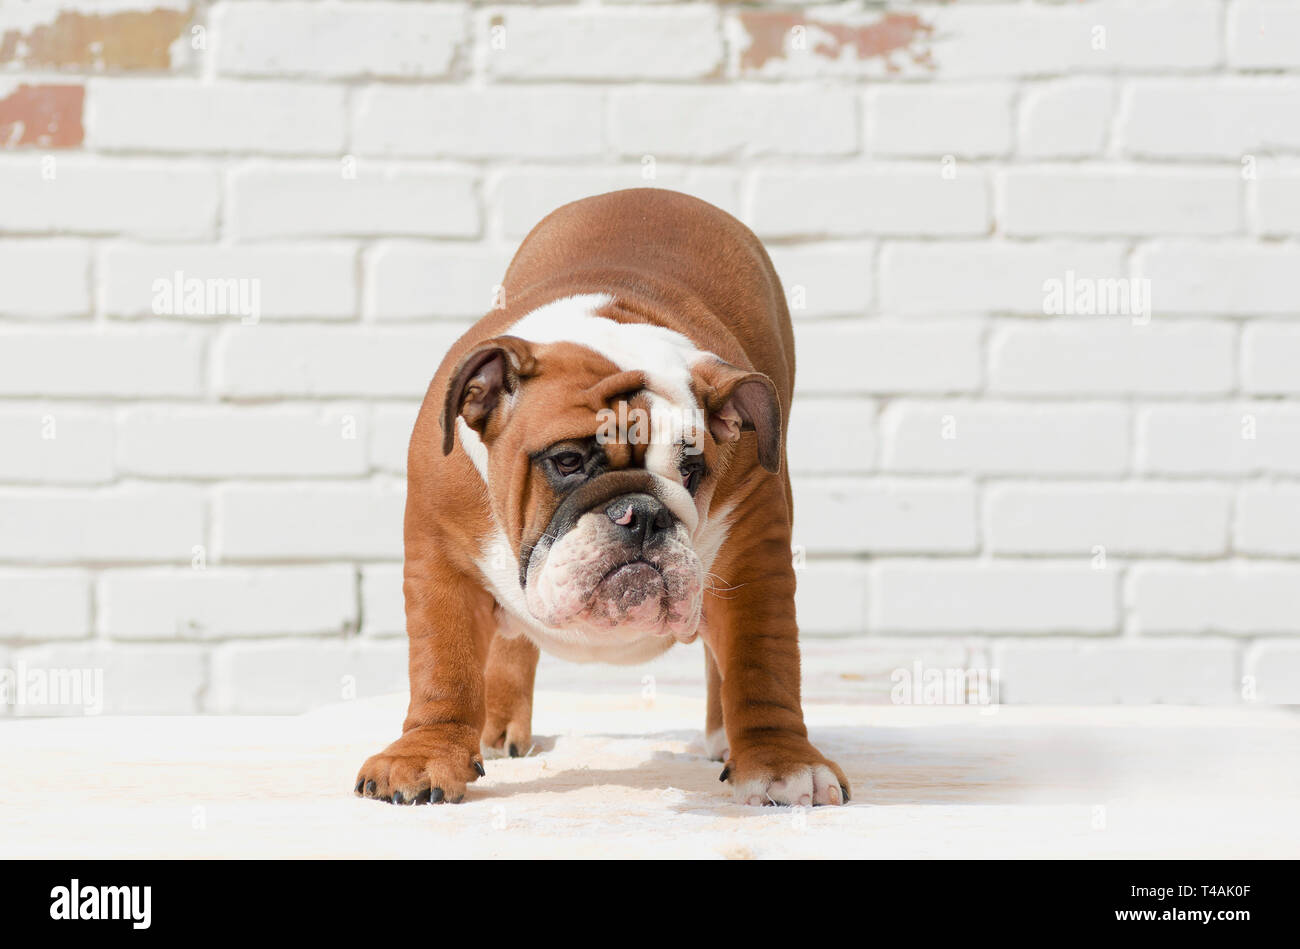 Cute English Bulldog Puppy High Resolution Stock Photography And Images Alamy